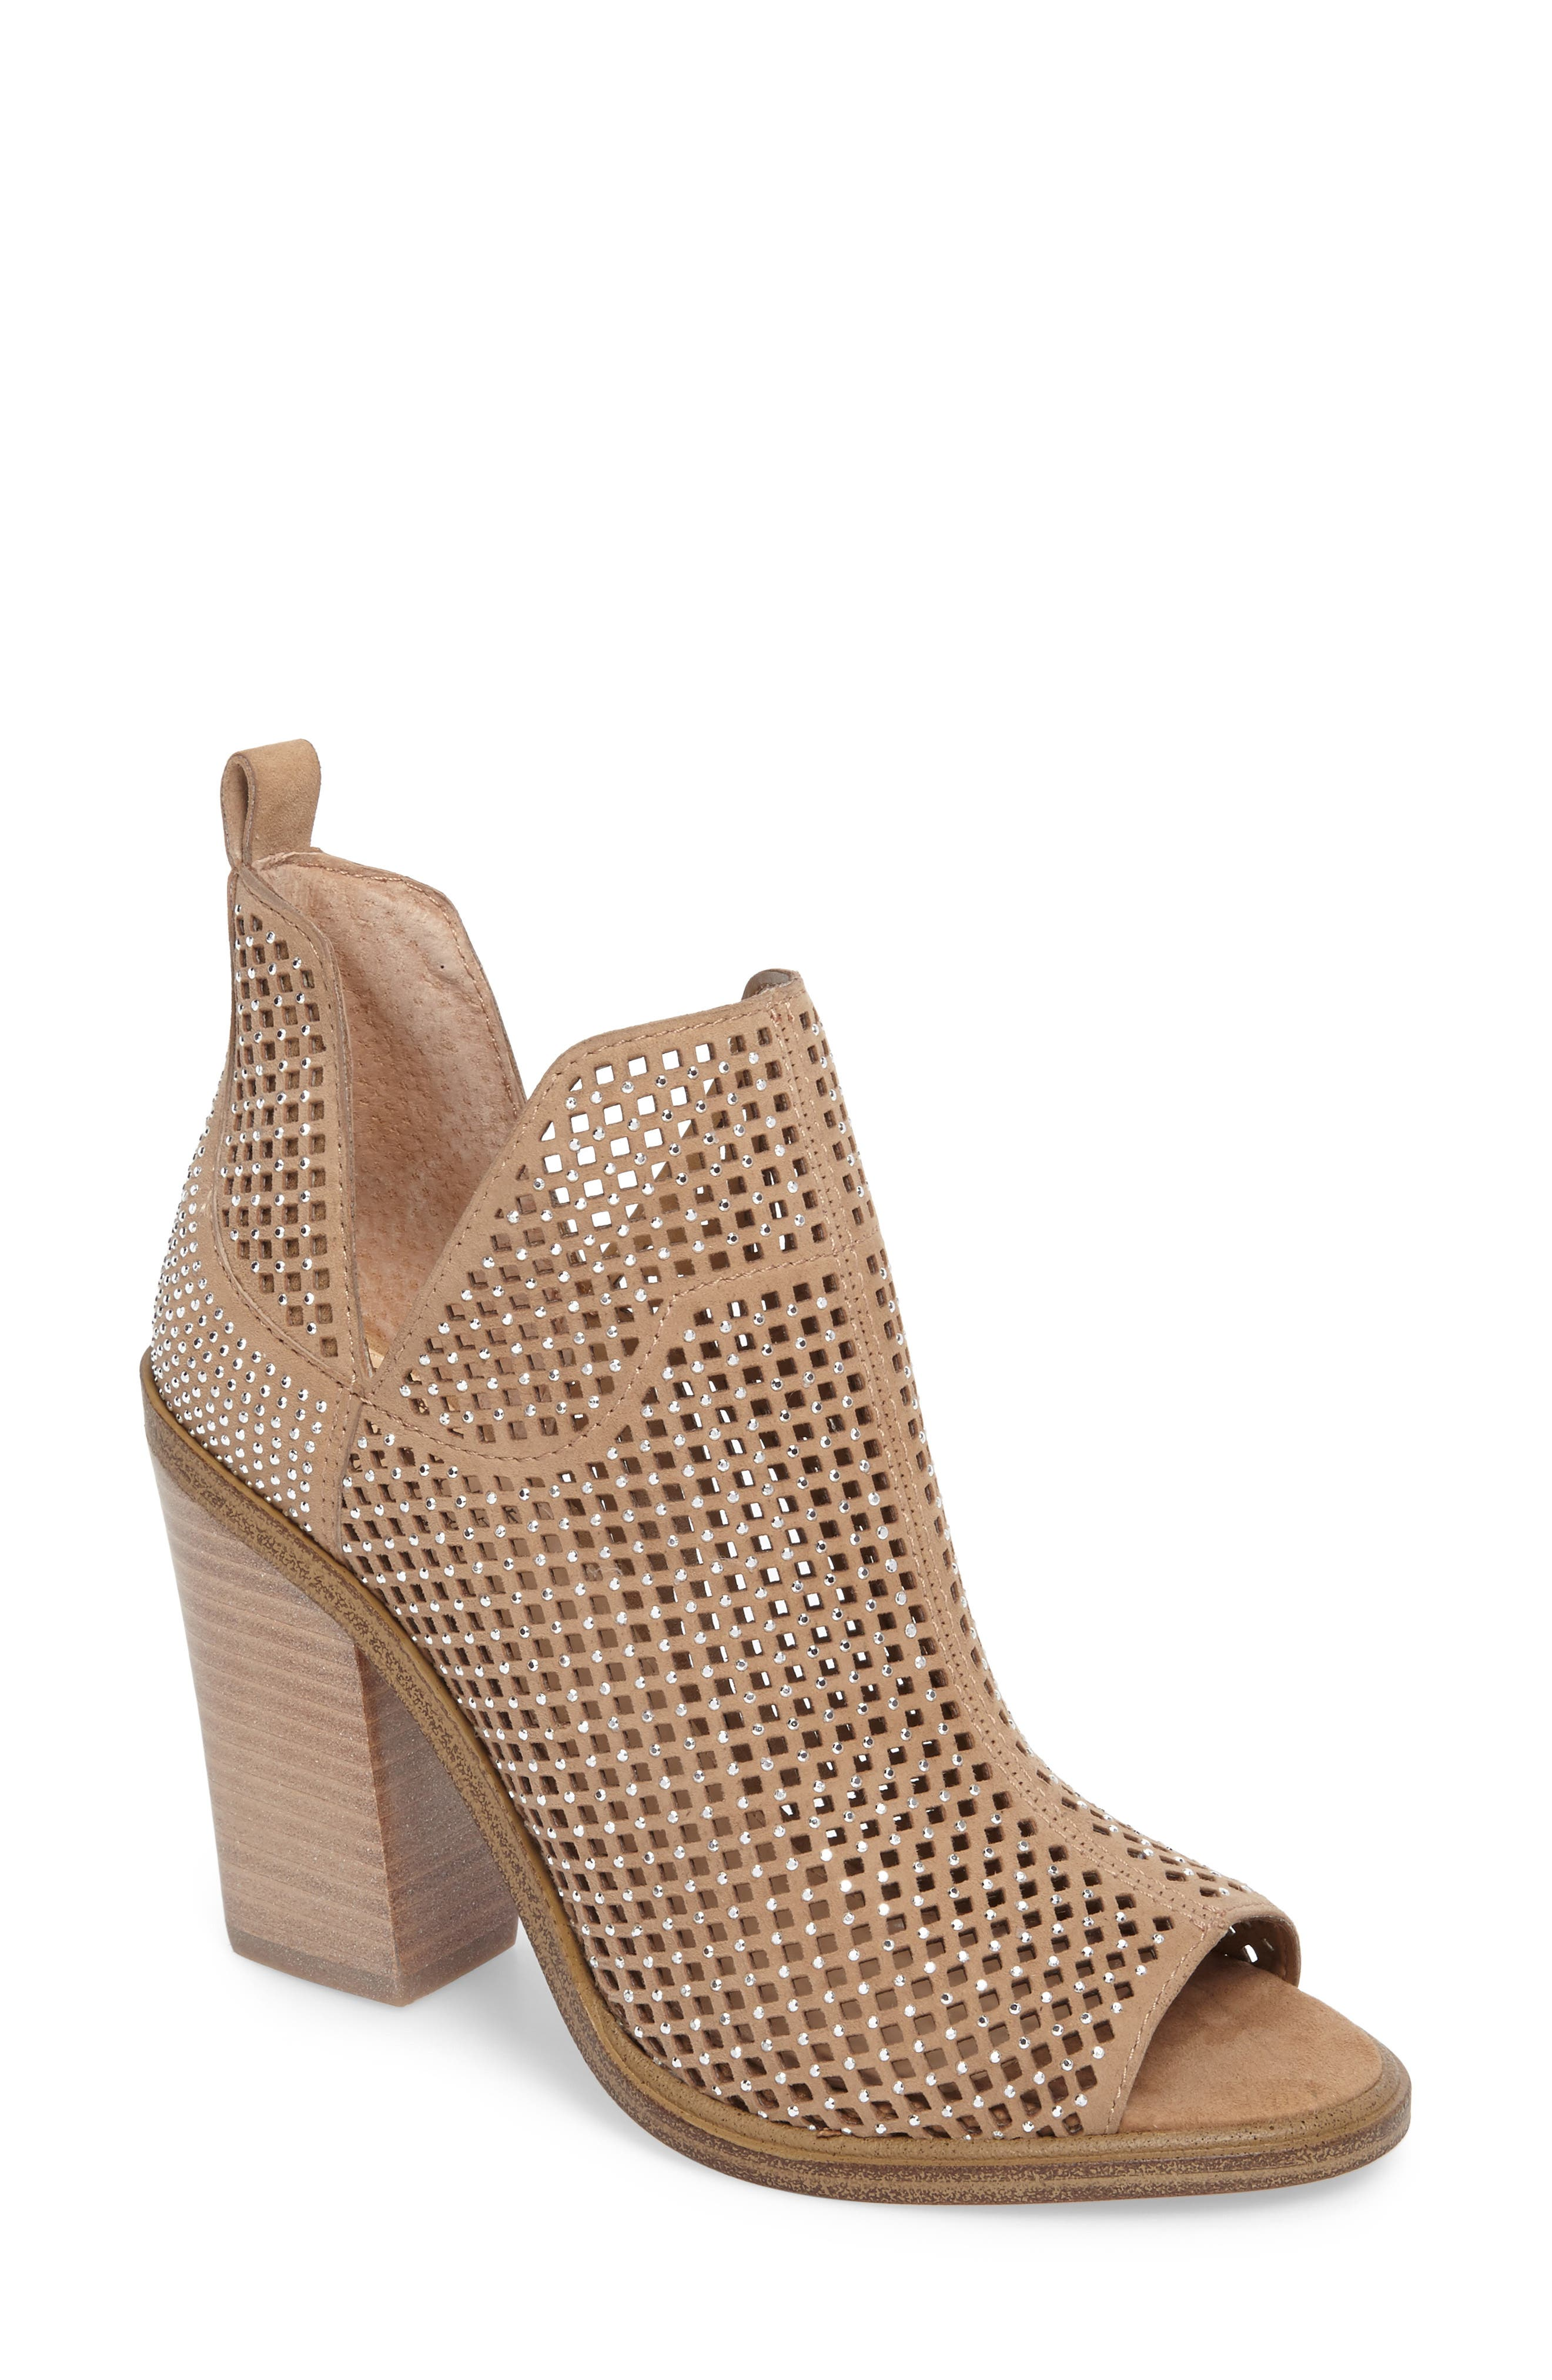 Vince Camuto Kiminni Open Toe Bootie (Women)